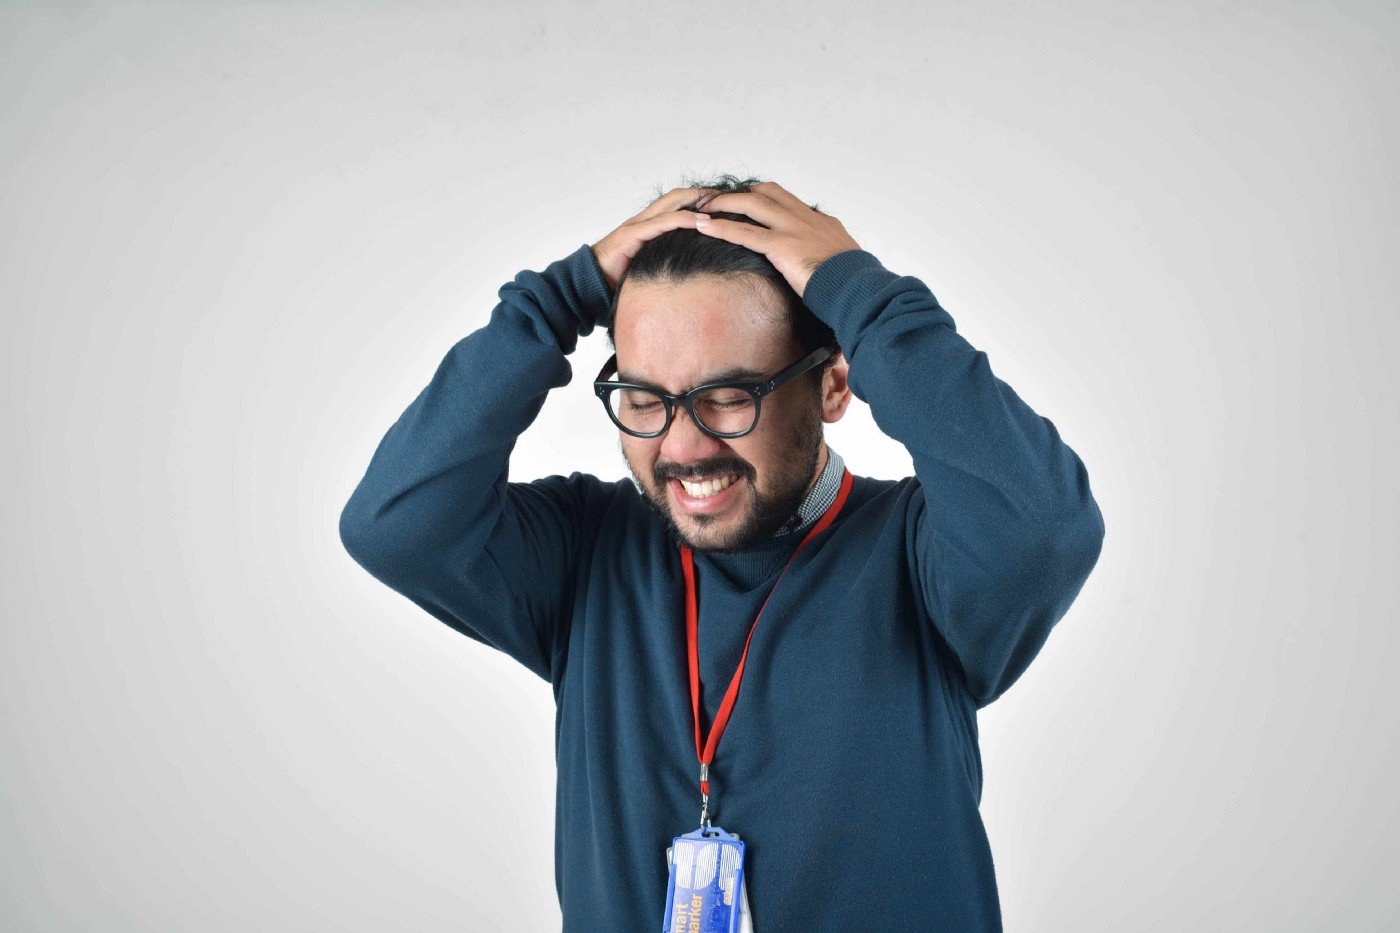 Frustrated salesperson